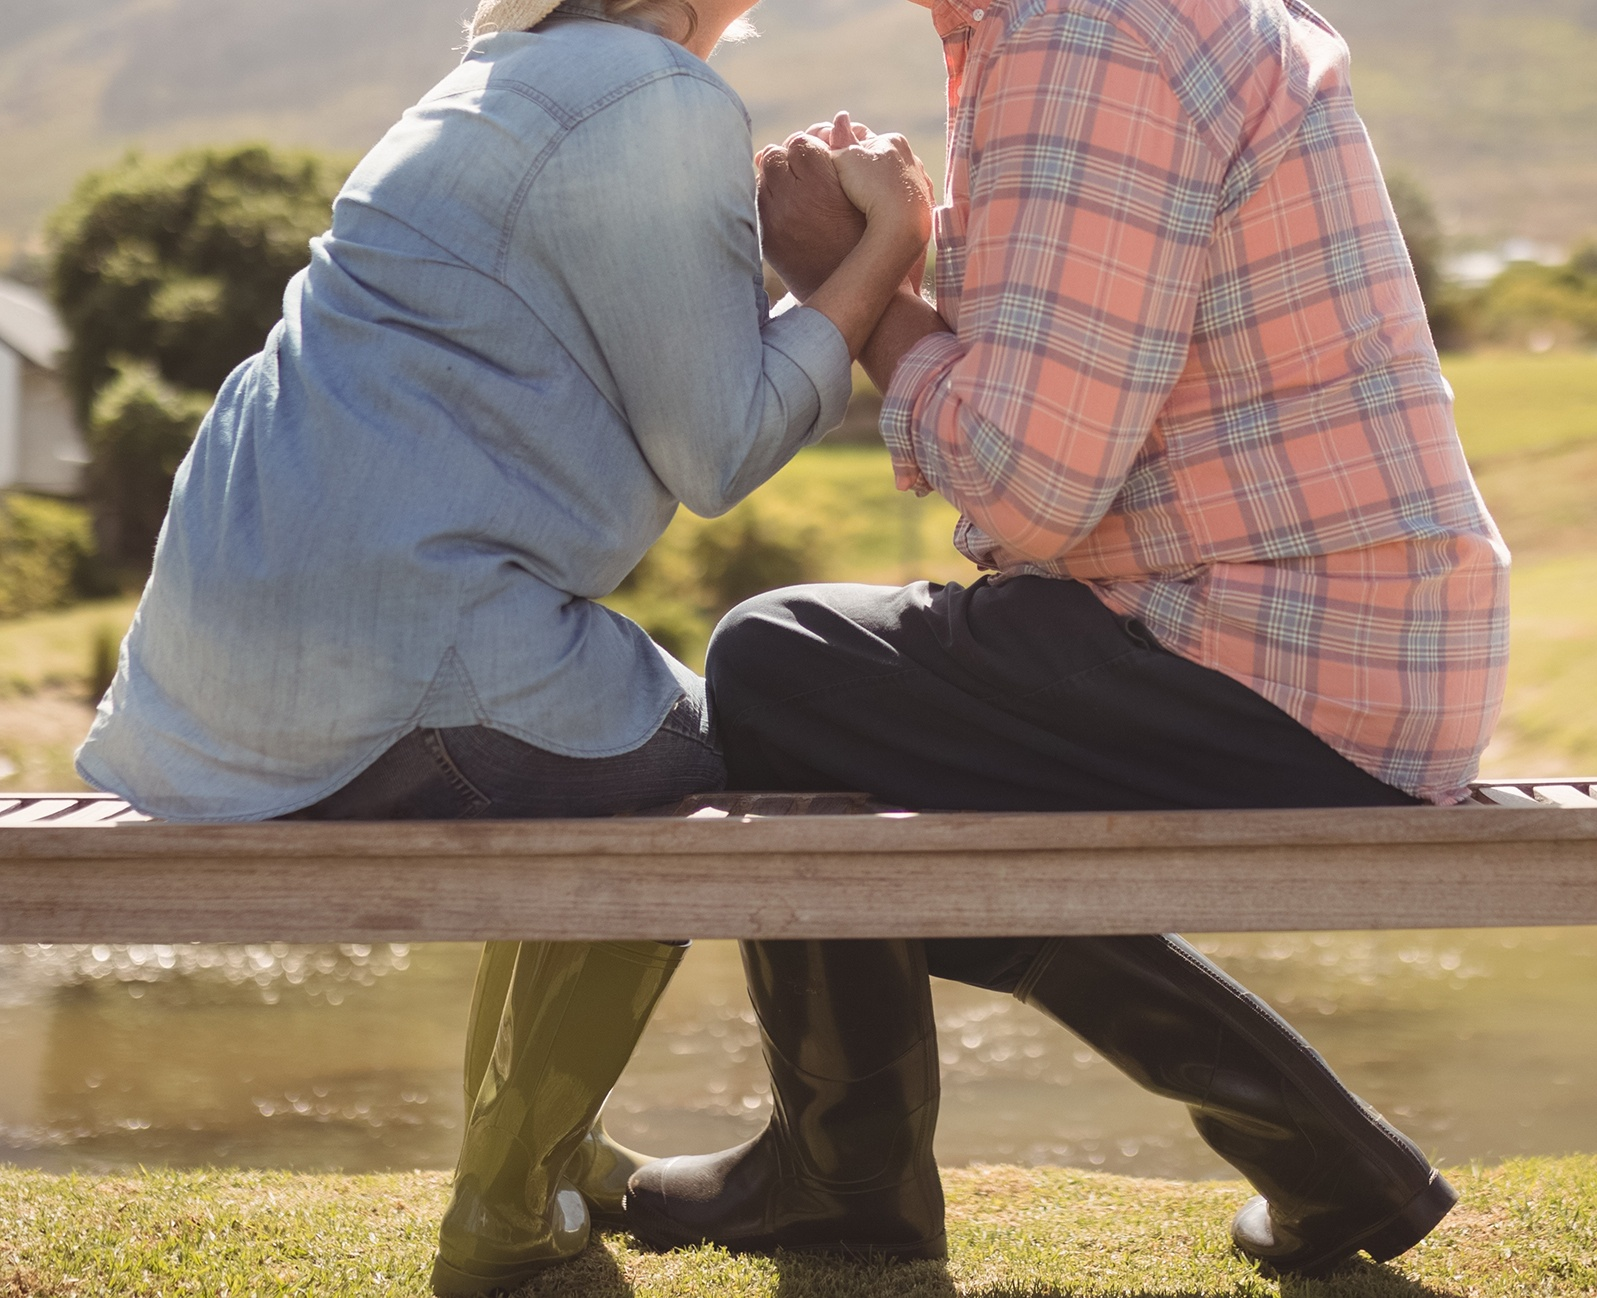 myths about sexuality and aging